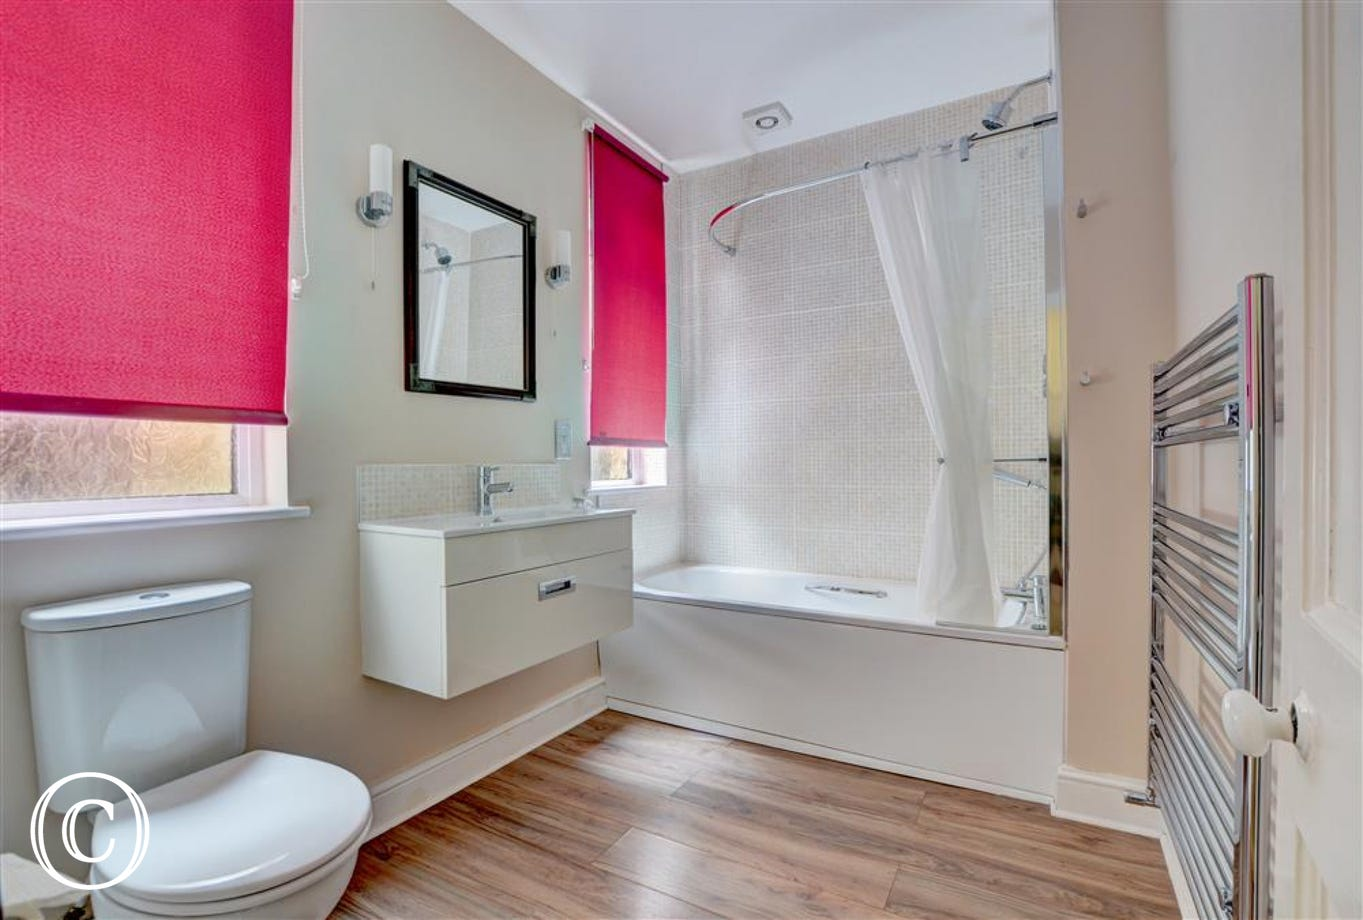 Spacious bathroom with brightly coloured blinds